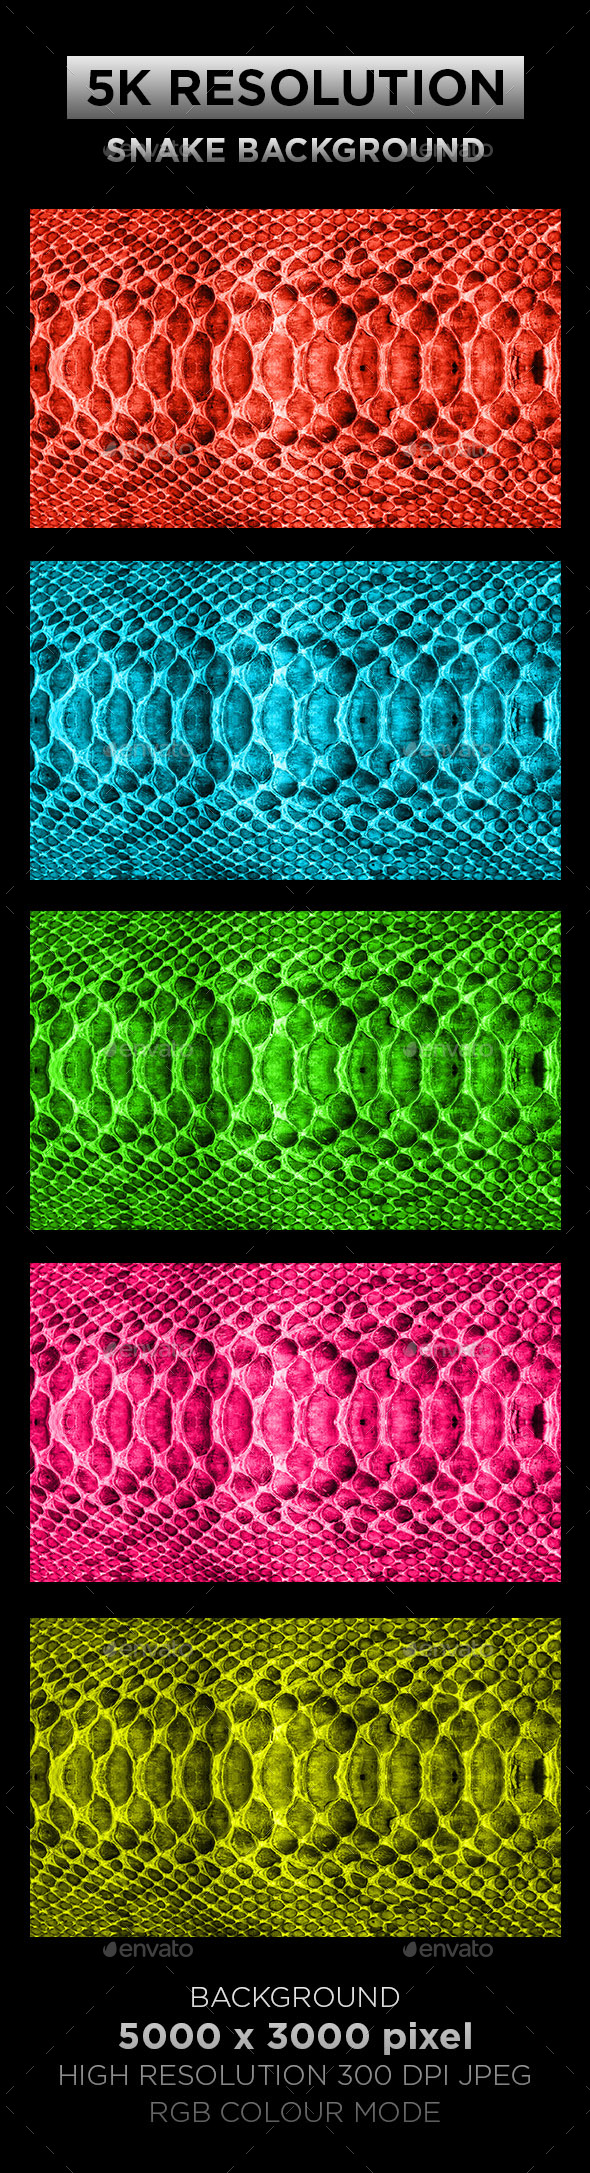 Snake Texture Background 001 - Patterns Backgrounds